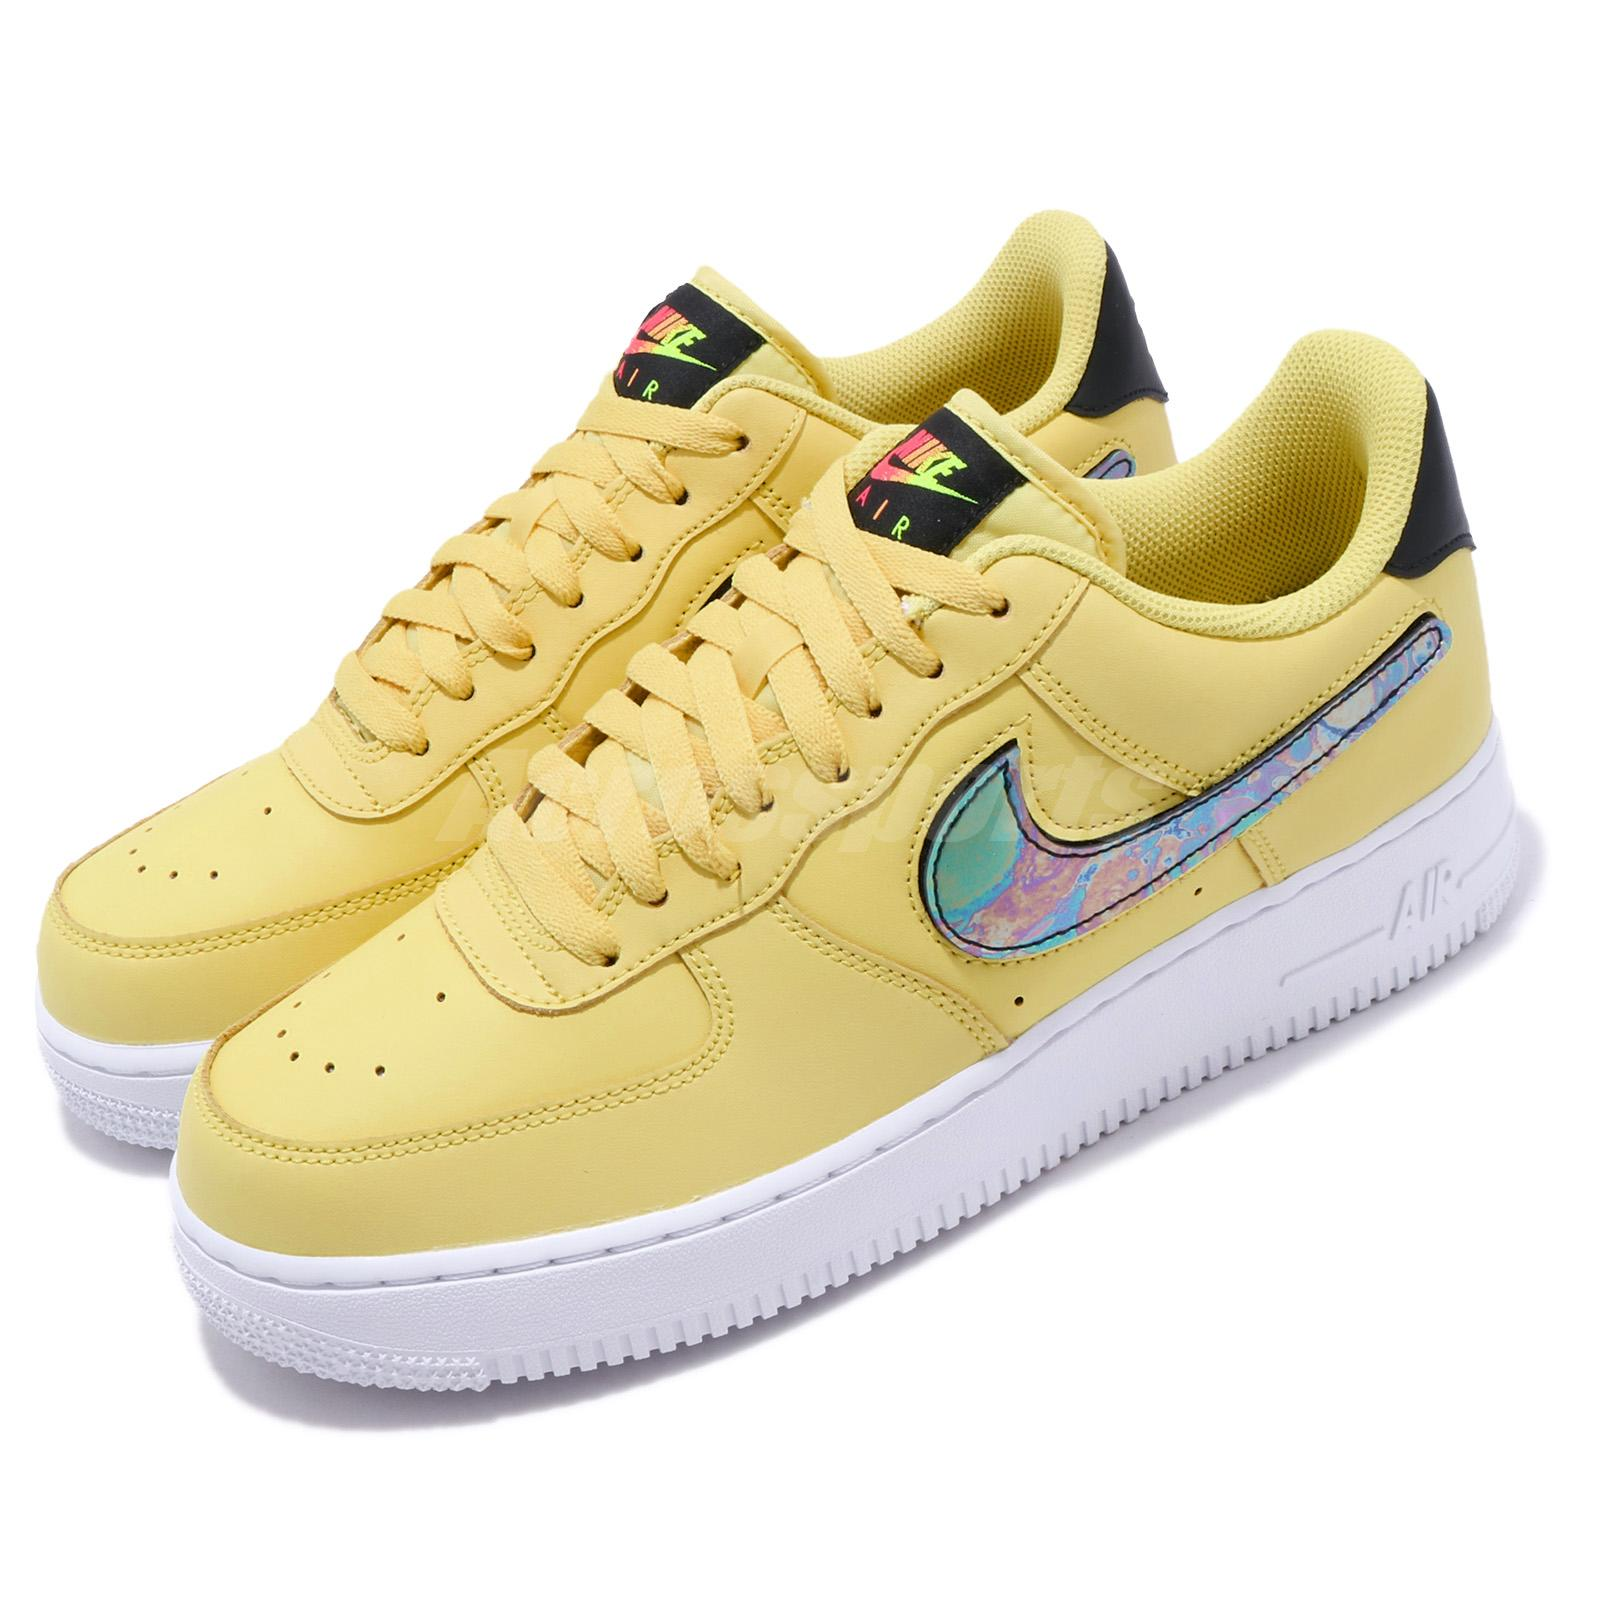 Details zu Nike Air Force 1 One Low LV8 Sneaker Men's Lifestyle Shoes Yellow Pulse